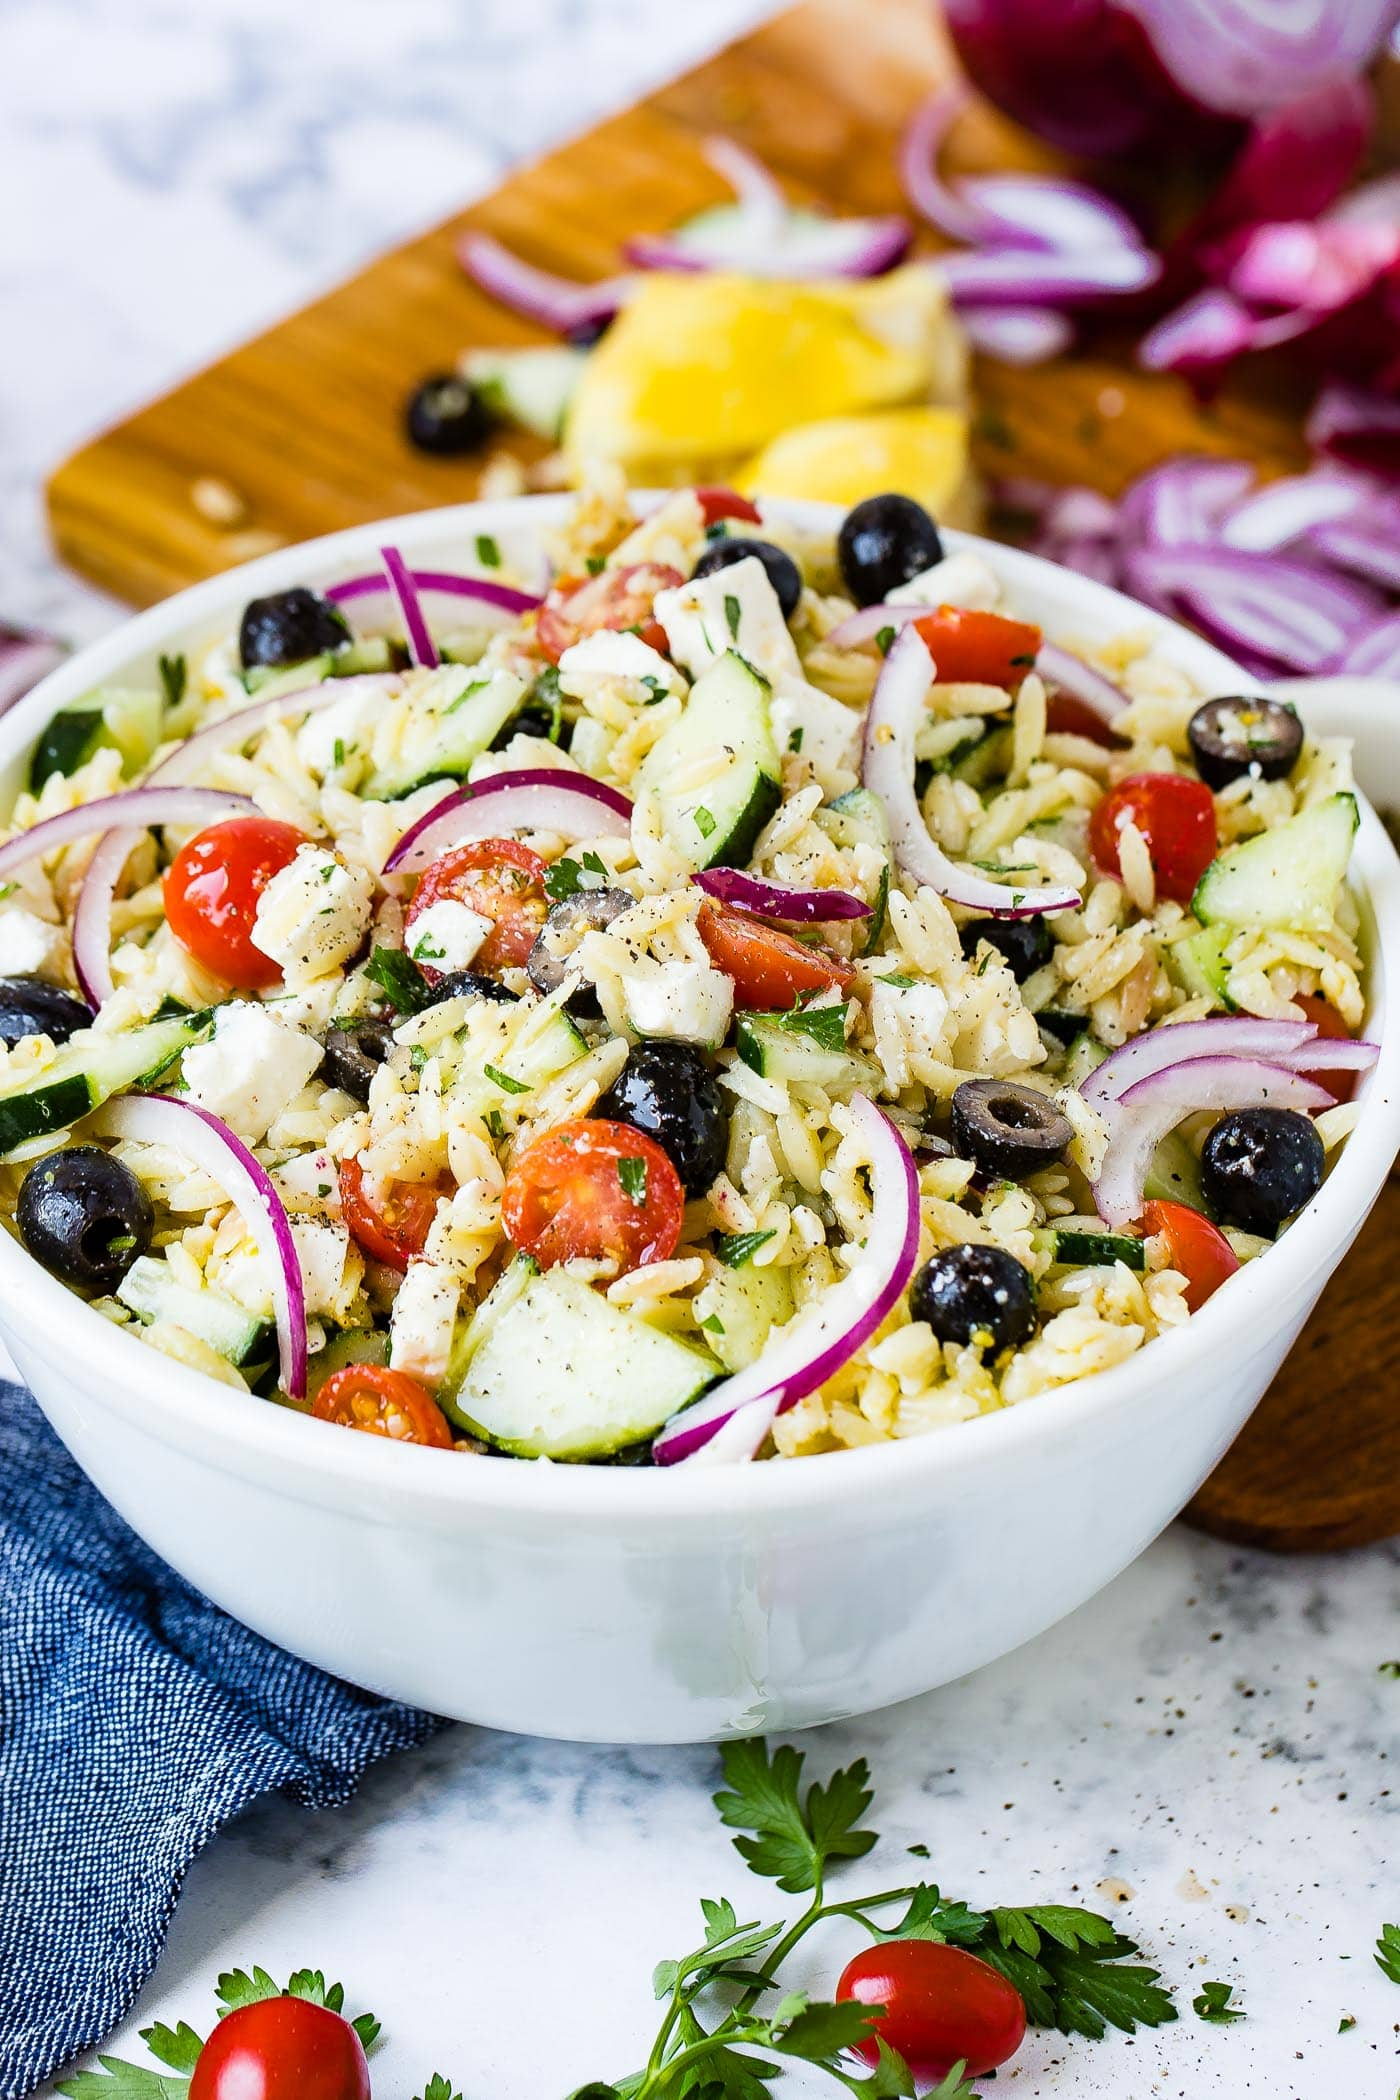 A white bowl full of Greek orzo pasta salad with black olives, cucumbers, cherry tomatoes, slices of red onions and feta cheese.